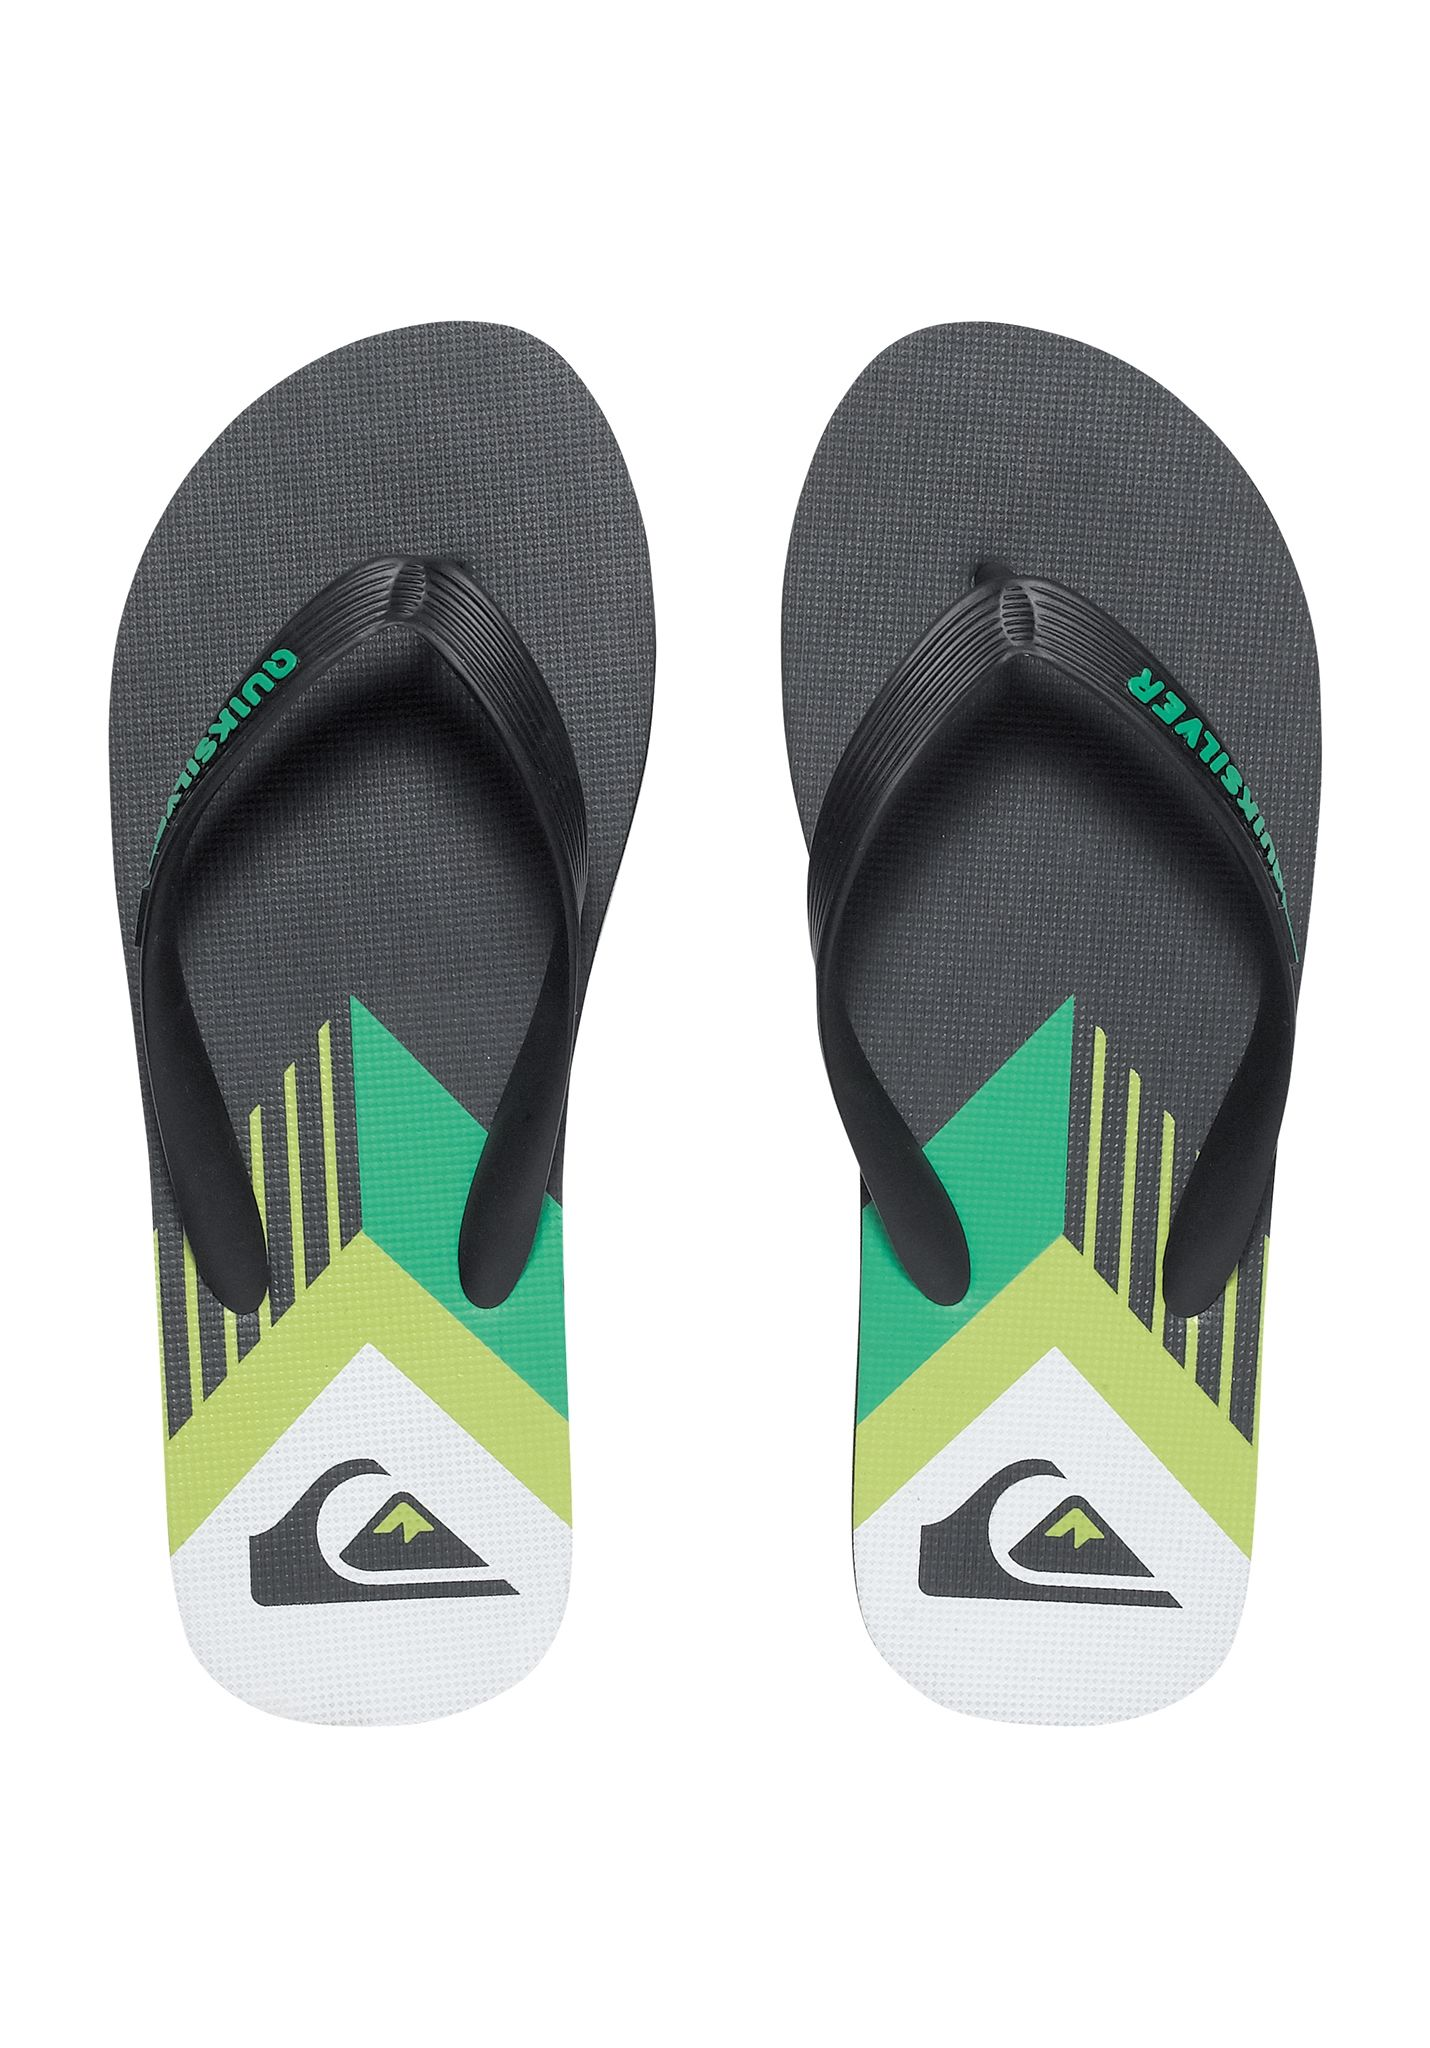 68565ccc7bf5e Quiksilver Molokai New Pan - Sandals for Men - Black - Planet Sports